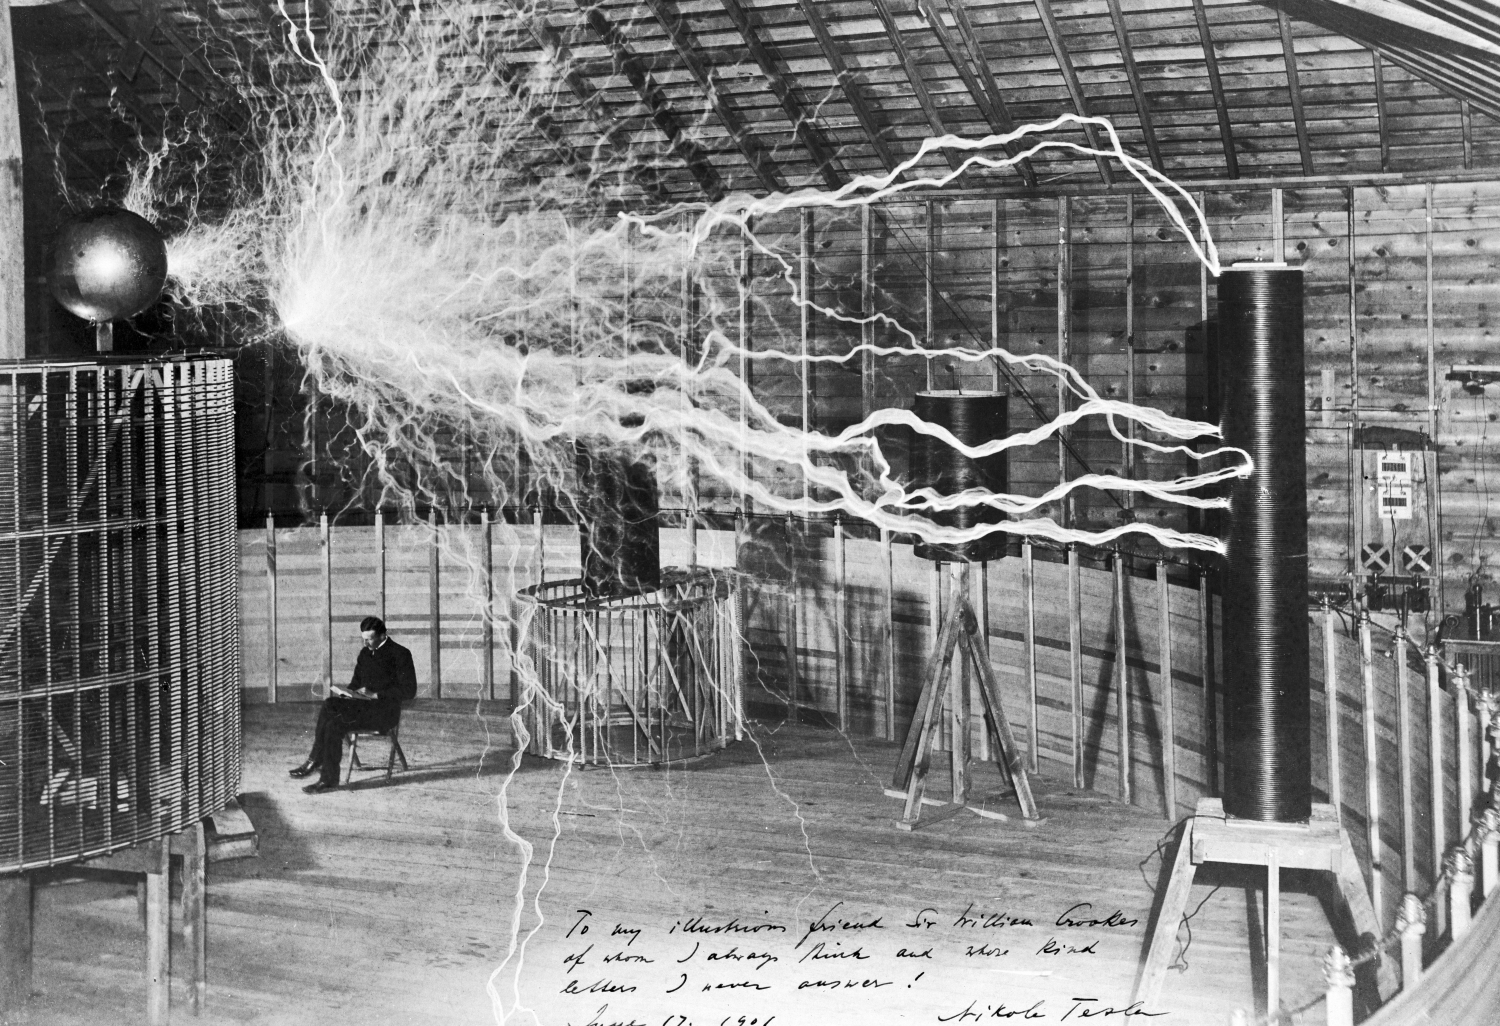 Nikola Tesla w swoim laboratorium w Colorado Springs 1899 roku (fot. Wikimedia Commons)